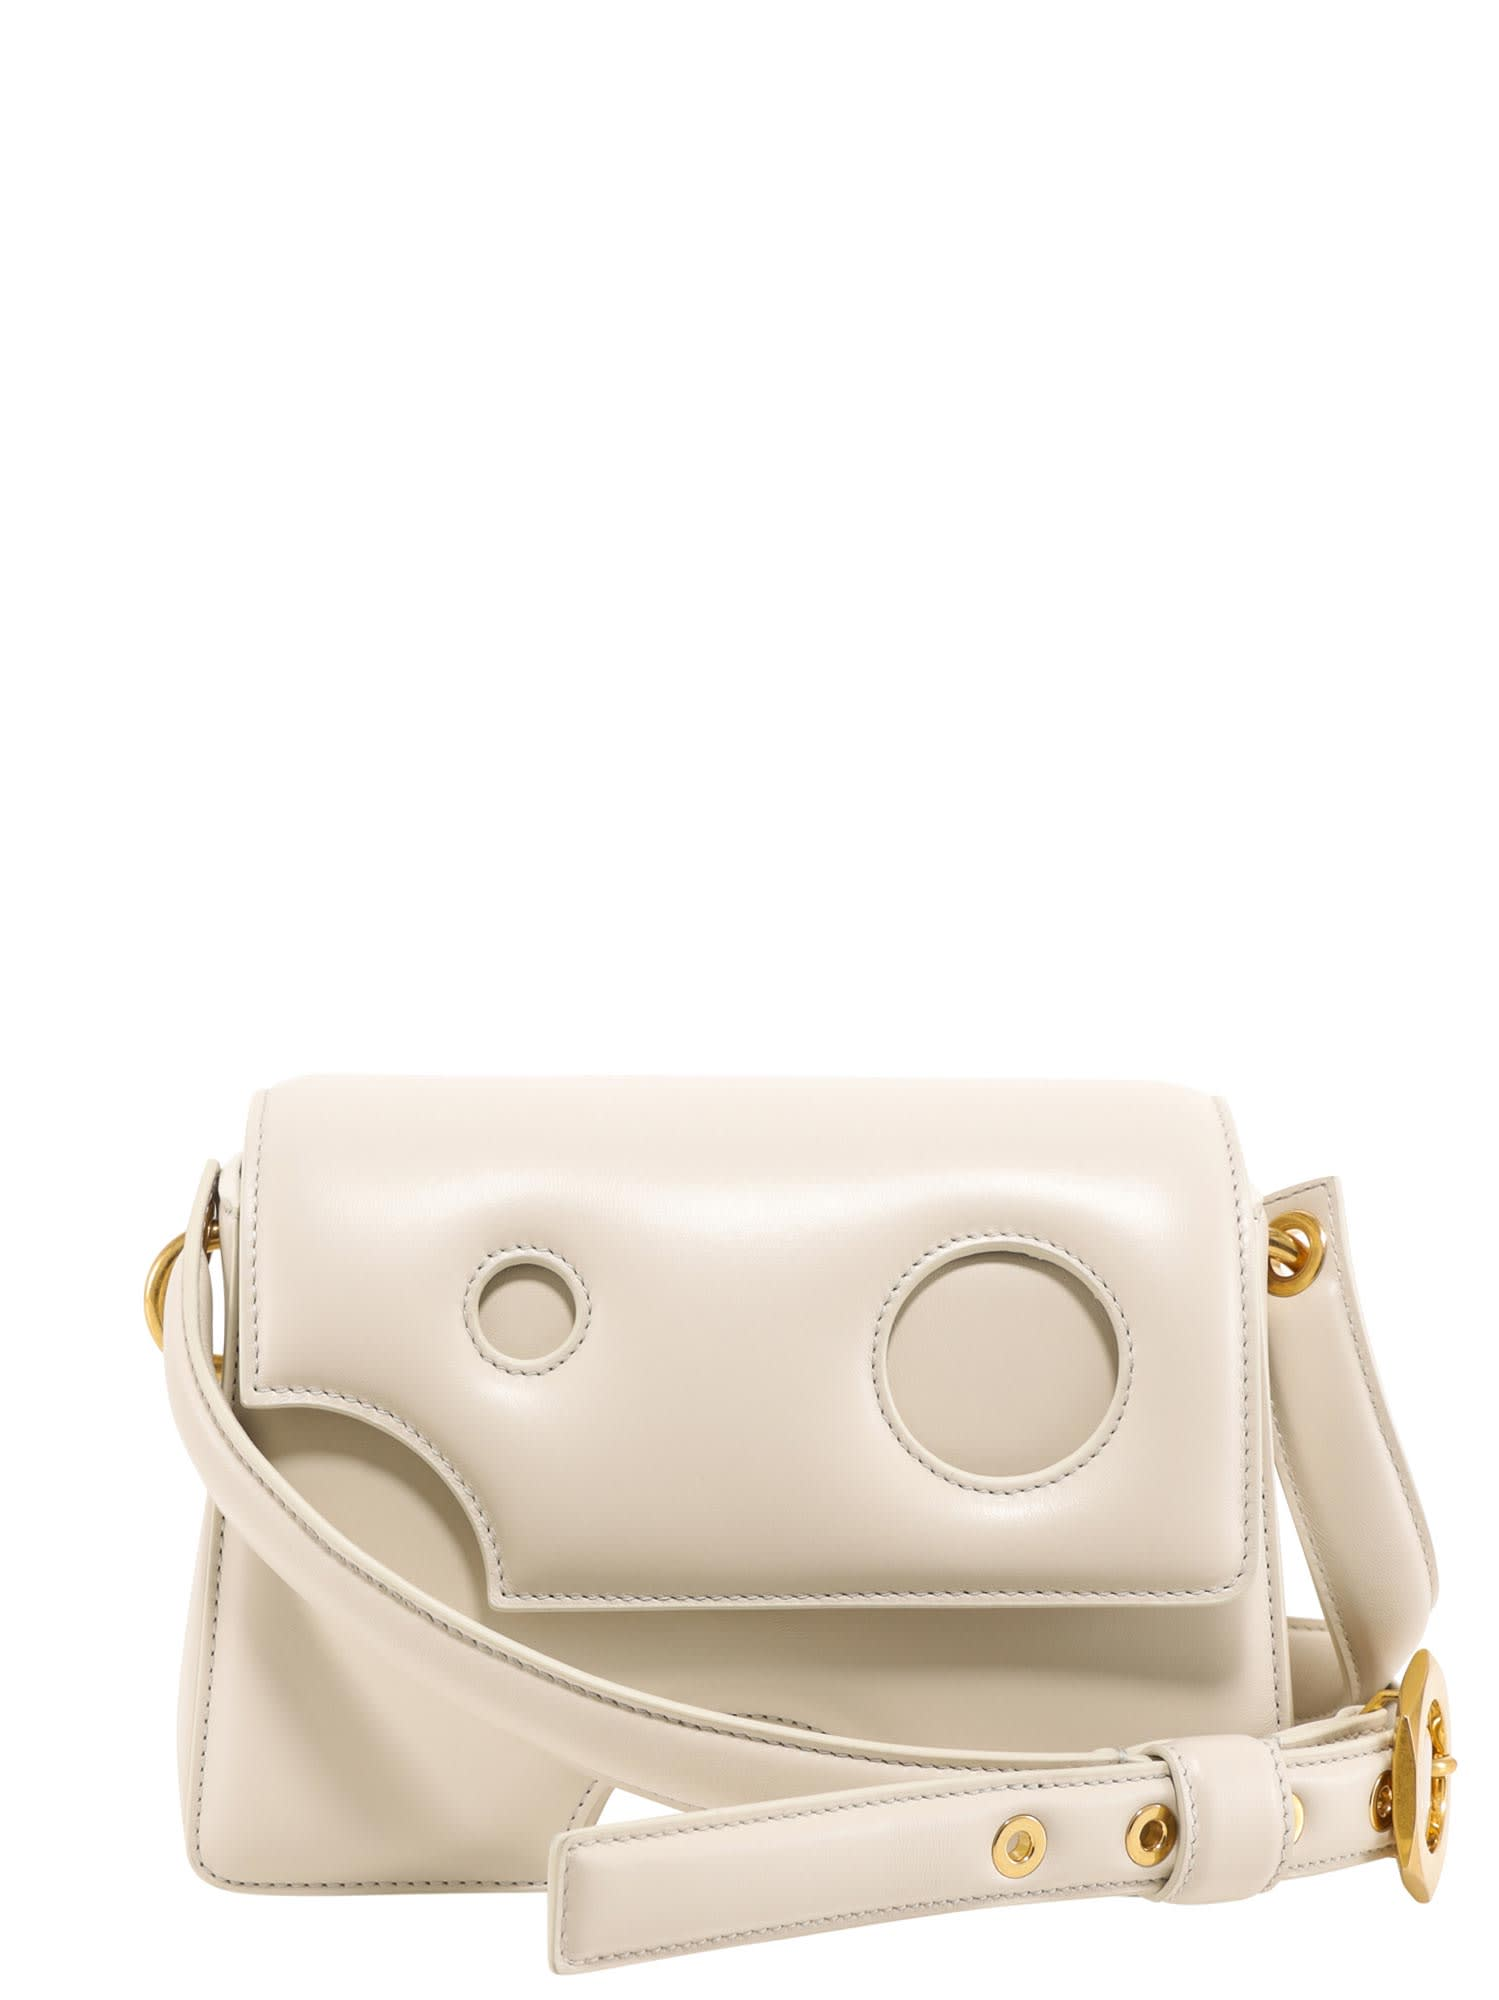 Off-White Leathers BURROW-22 SHOULDER BAG